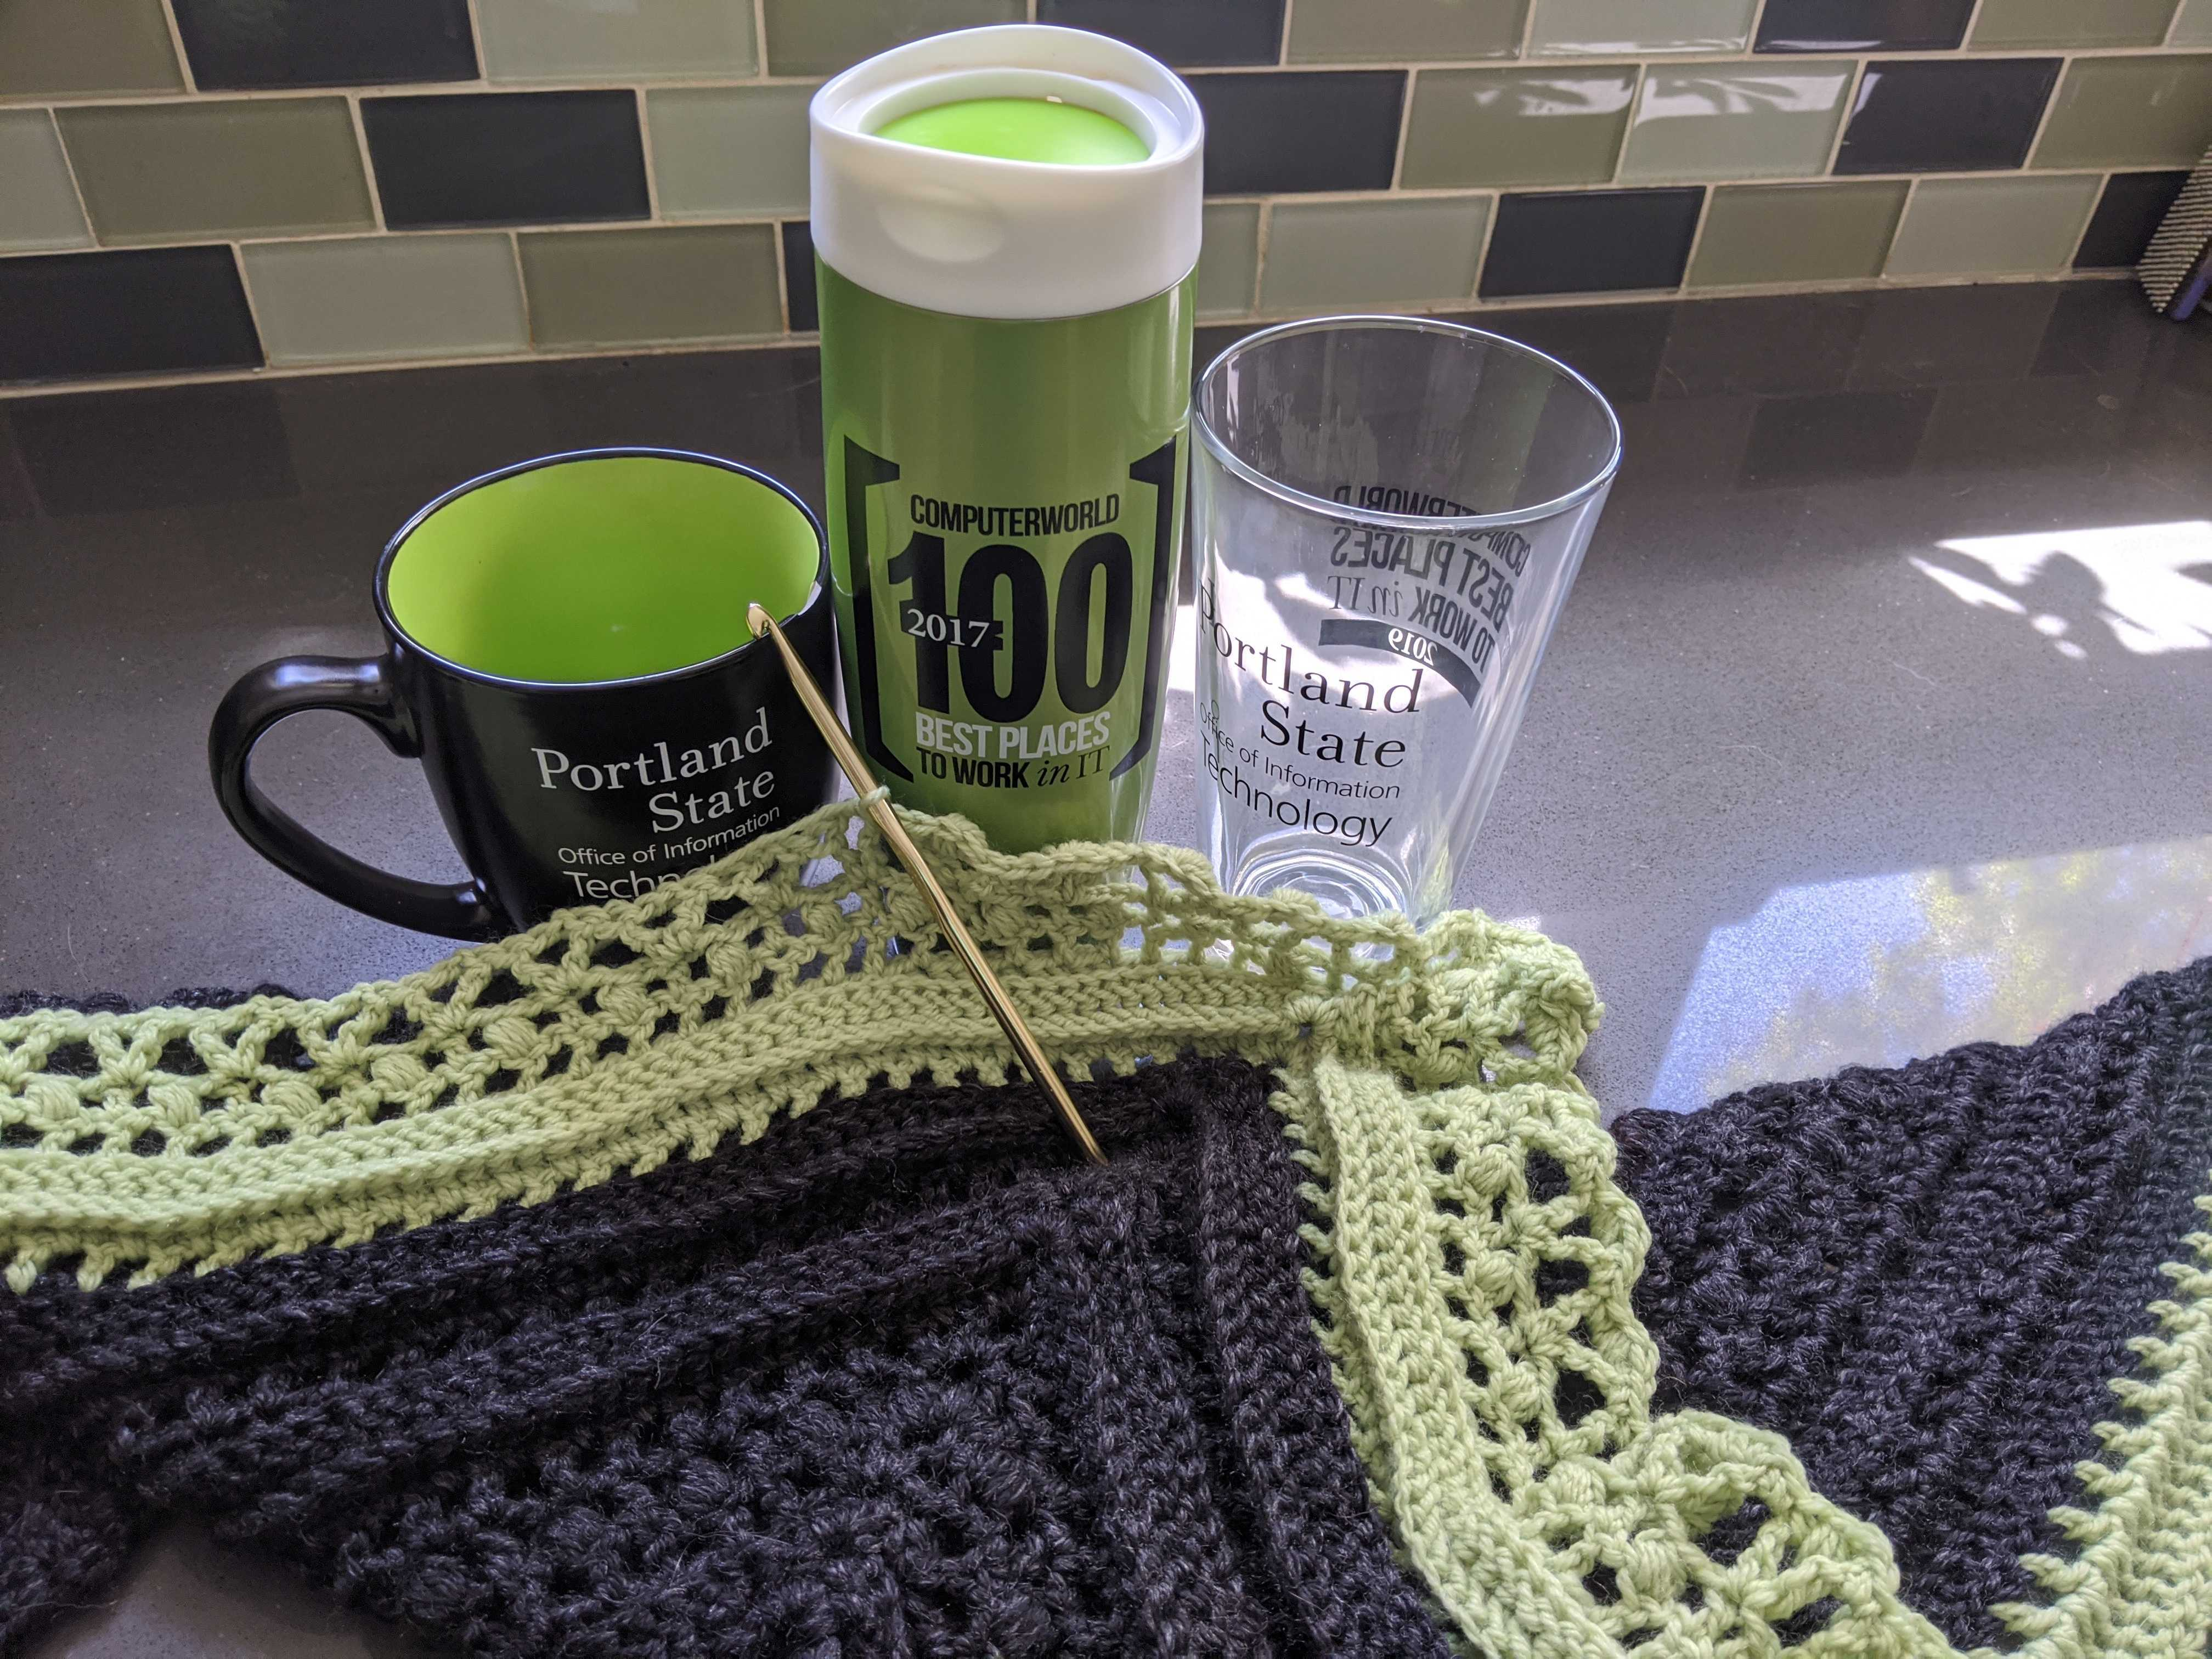 Three mugs celebrating our awards for Best Place to Work in IT, sitting on a countertop next to a shawl crocheted in the PSU colors.